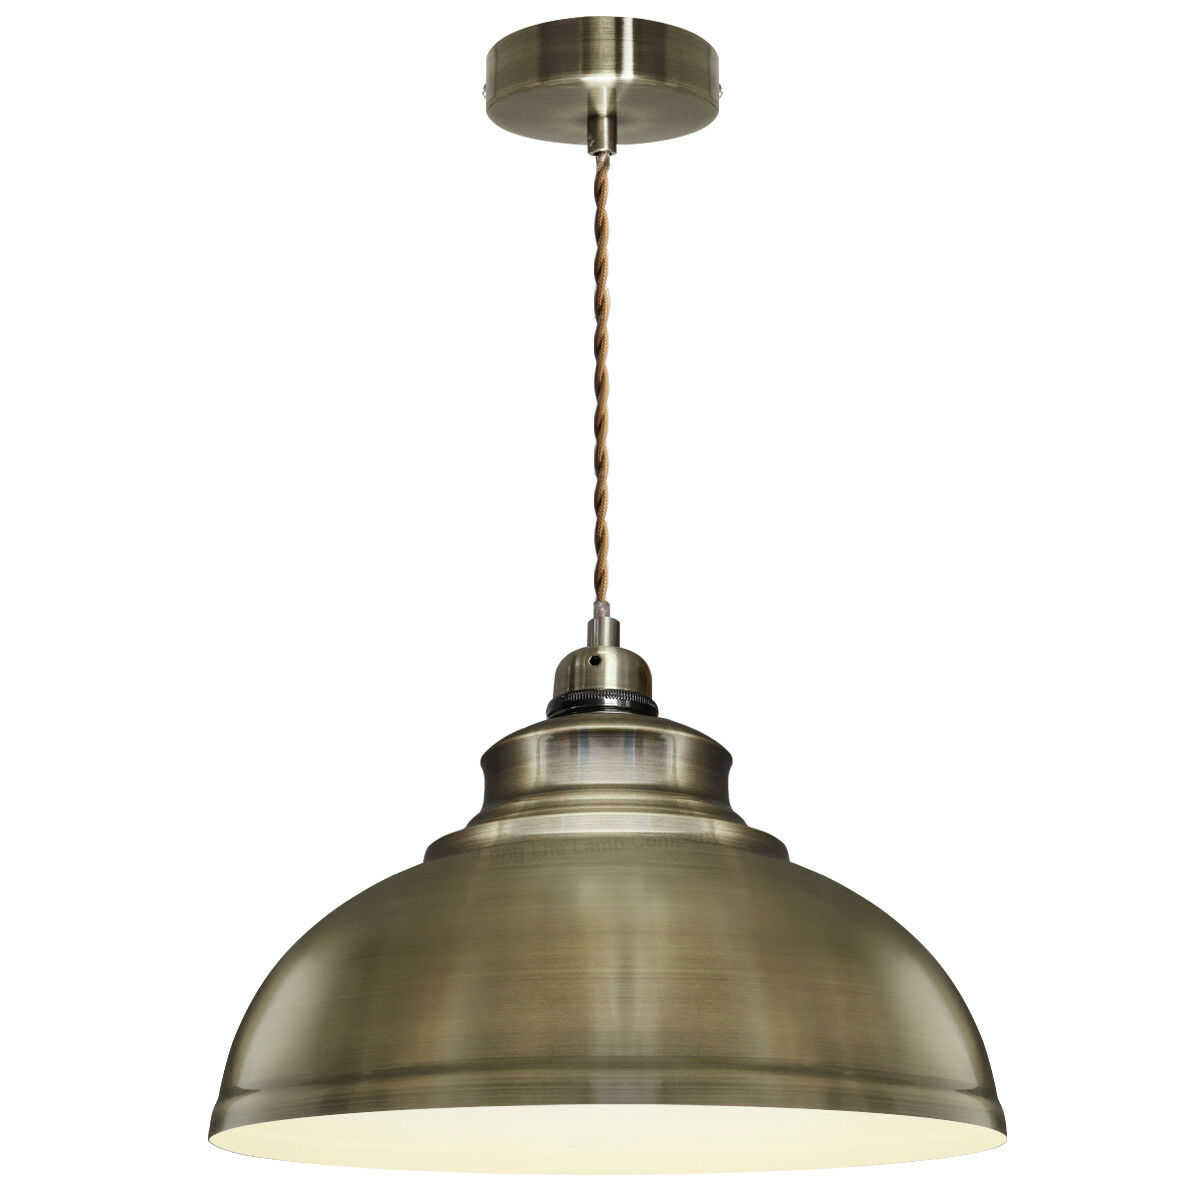 Outstanding Details About Vintage Antique Brass Hanging Ceiling Pendant Dining Room Light With Free Bulb Download Free Architecture Designs Viewormadebymaigaardcom